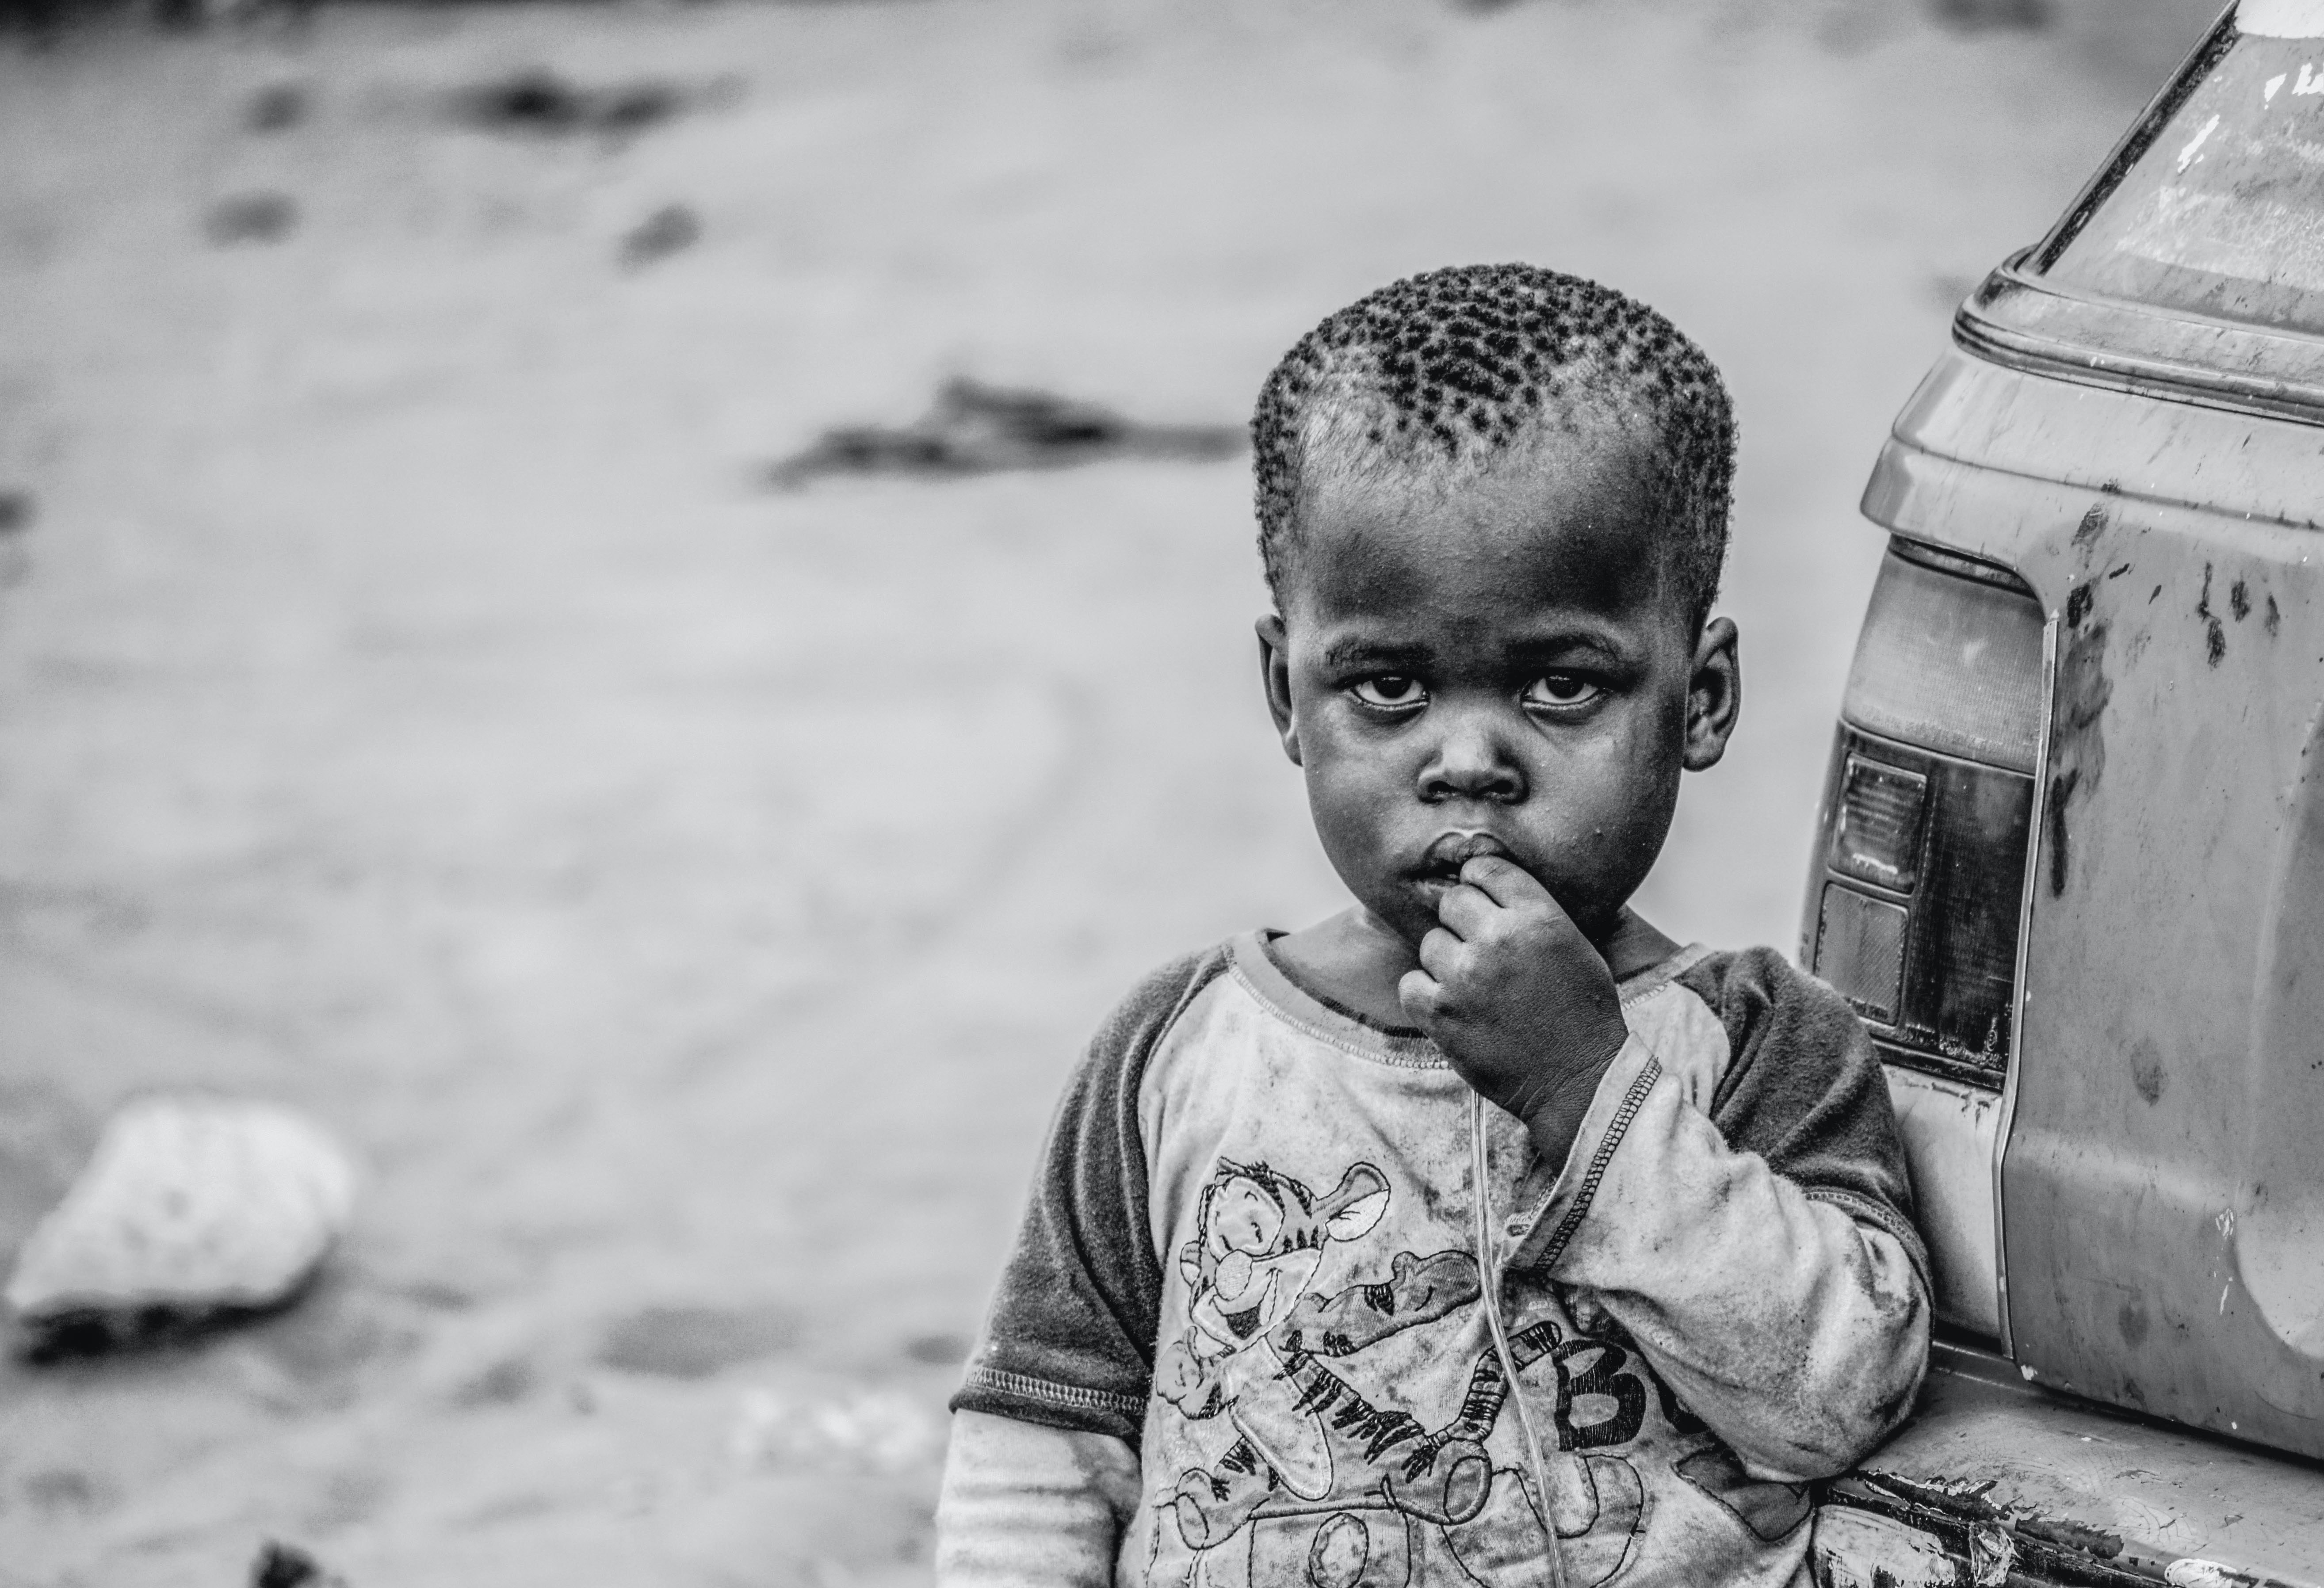 Free stock photo of african children black and white child